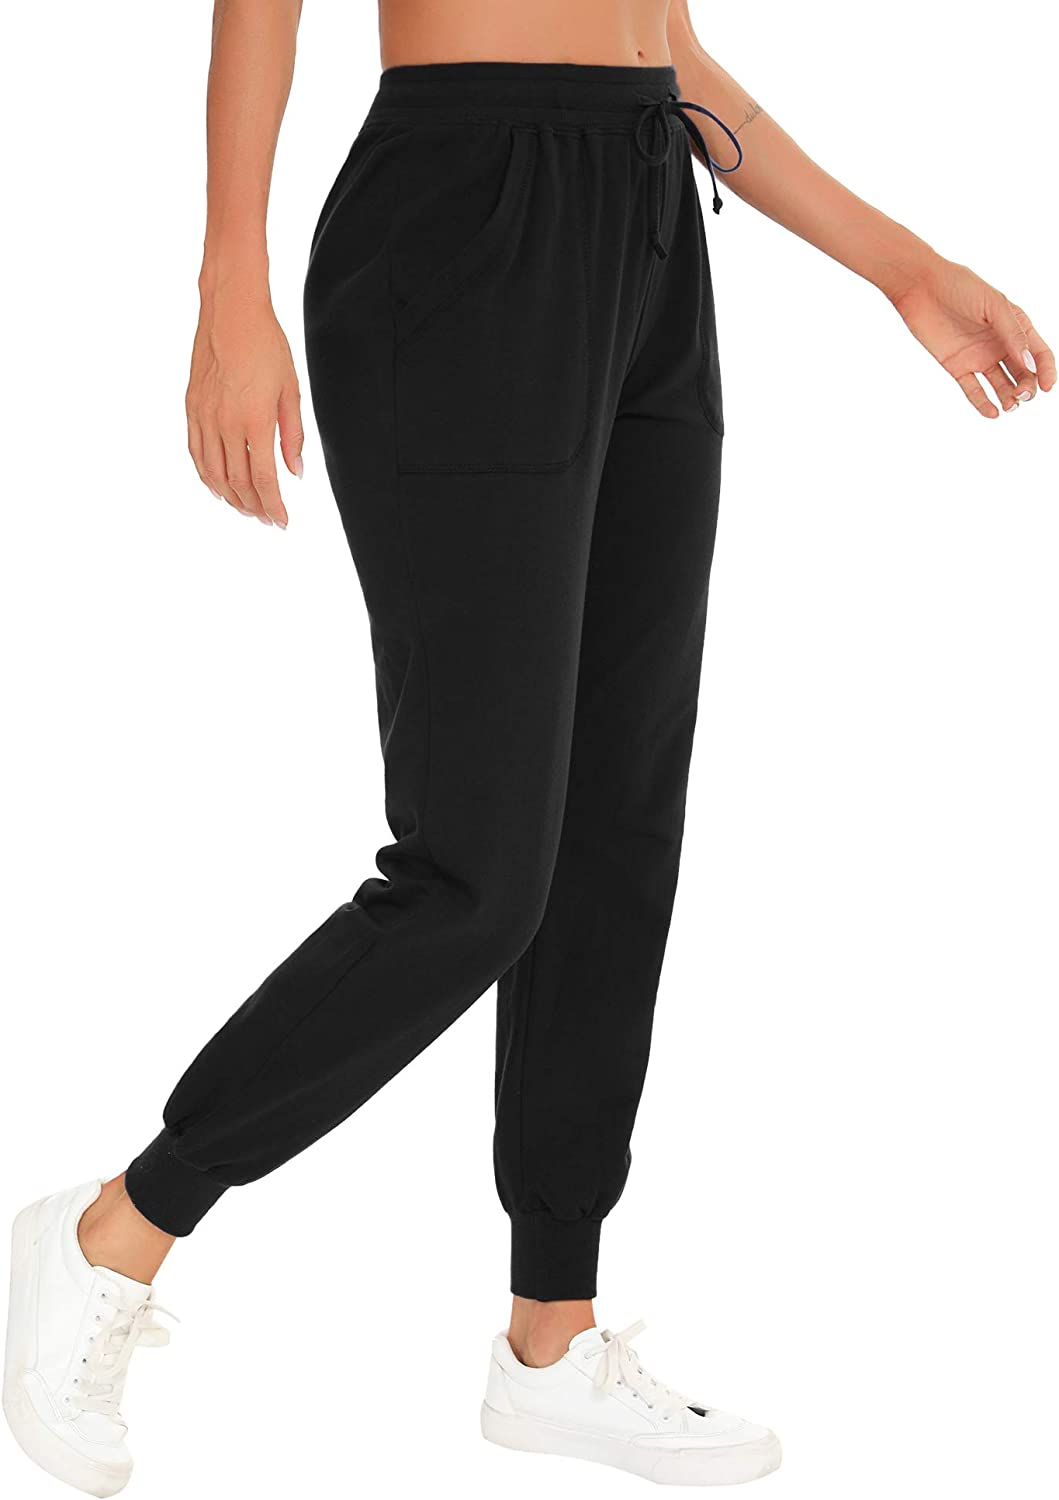 Hawiton Womens Jogger Yoga Pants,Athletic Casual Sports Trousers Sweatpants Bottoms with Pockets